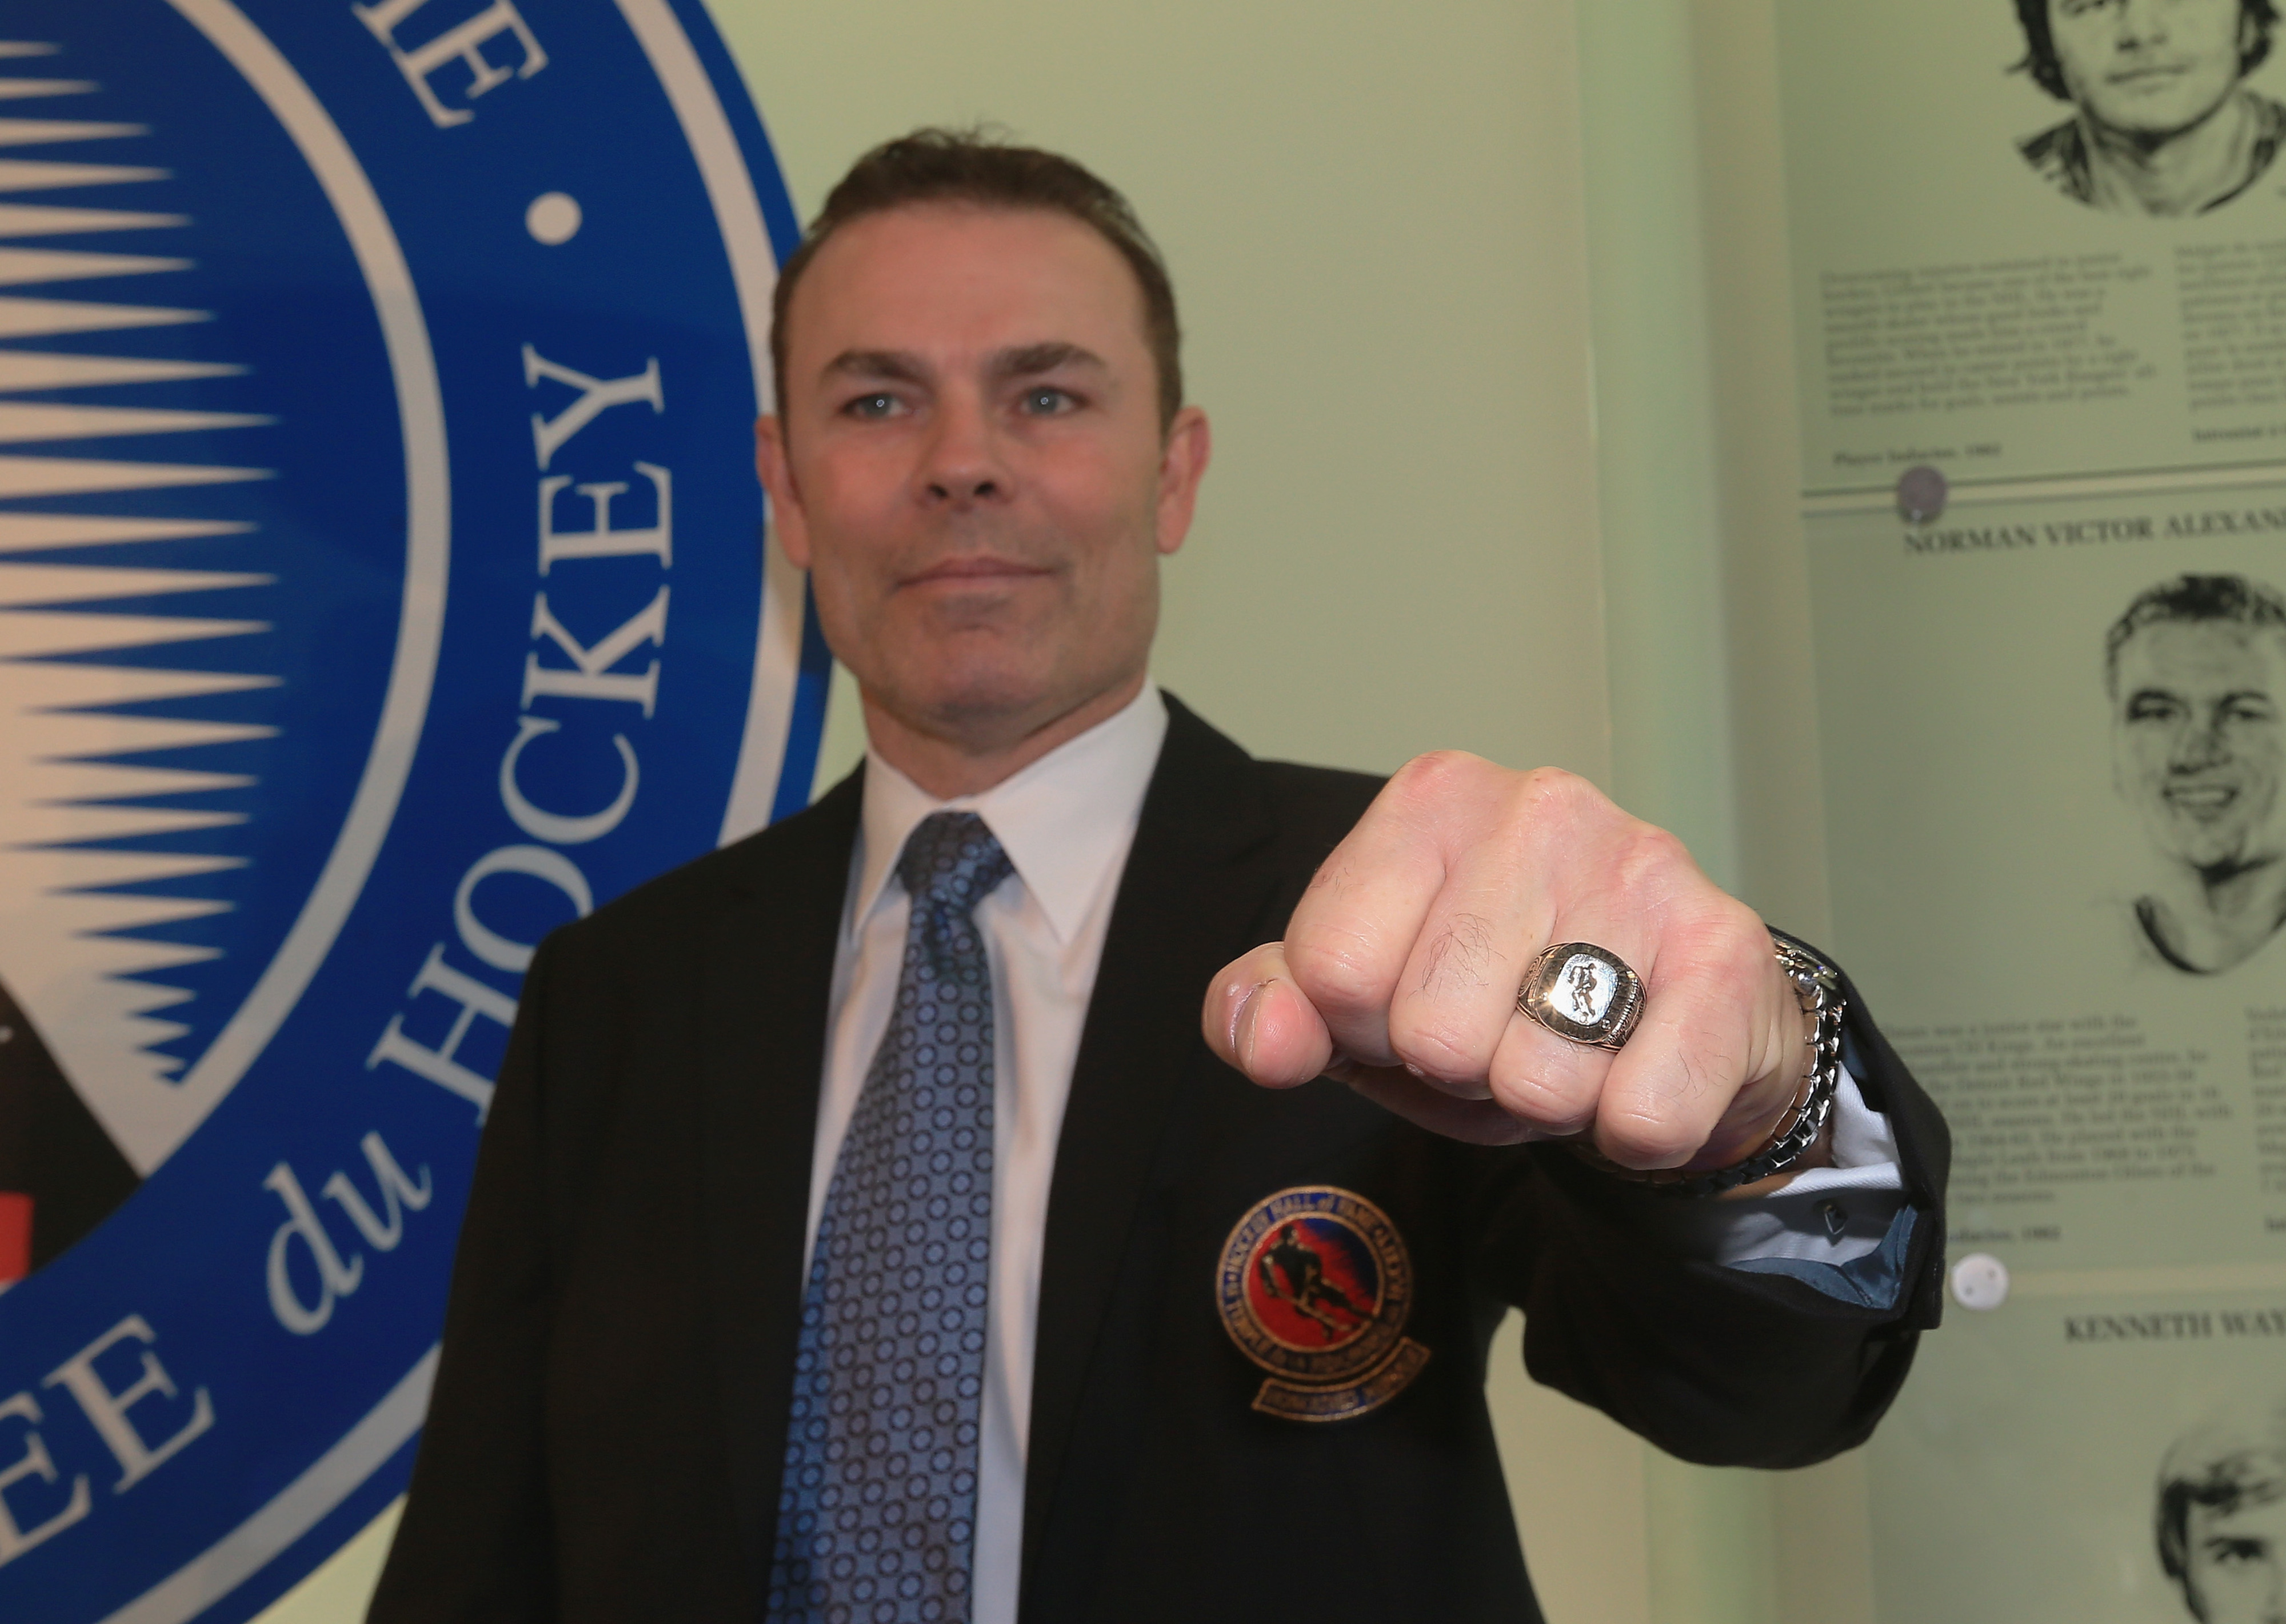 That Hall of Fame ring? Suits you, sir!